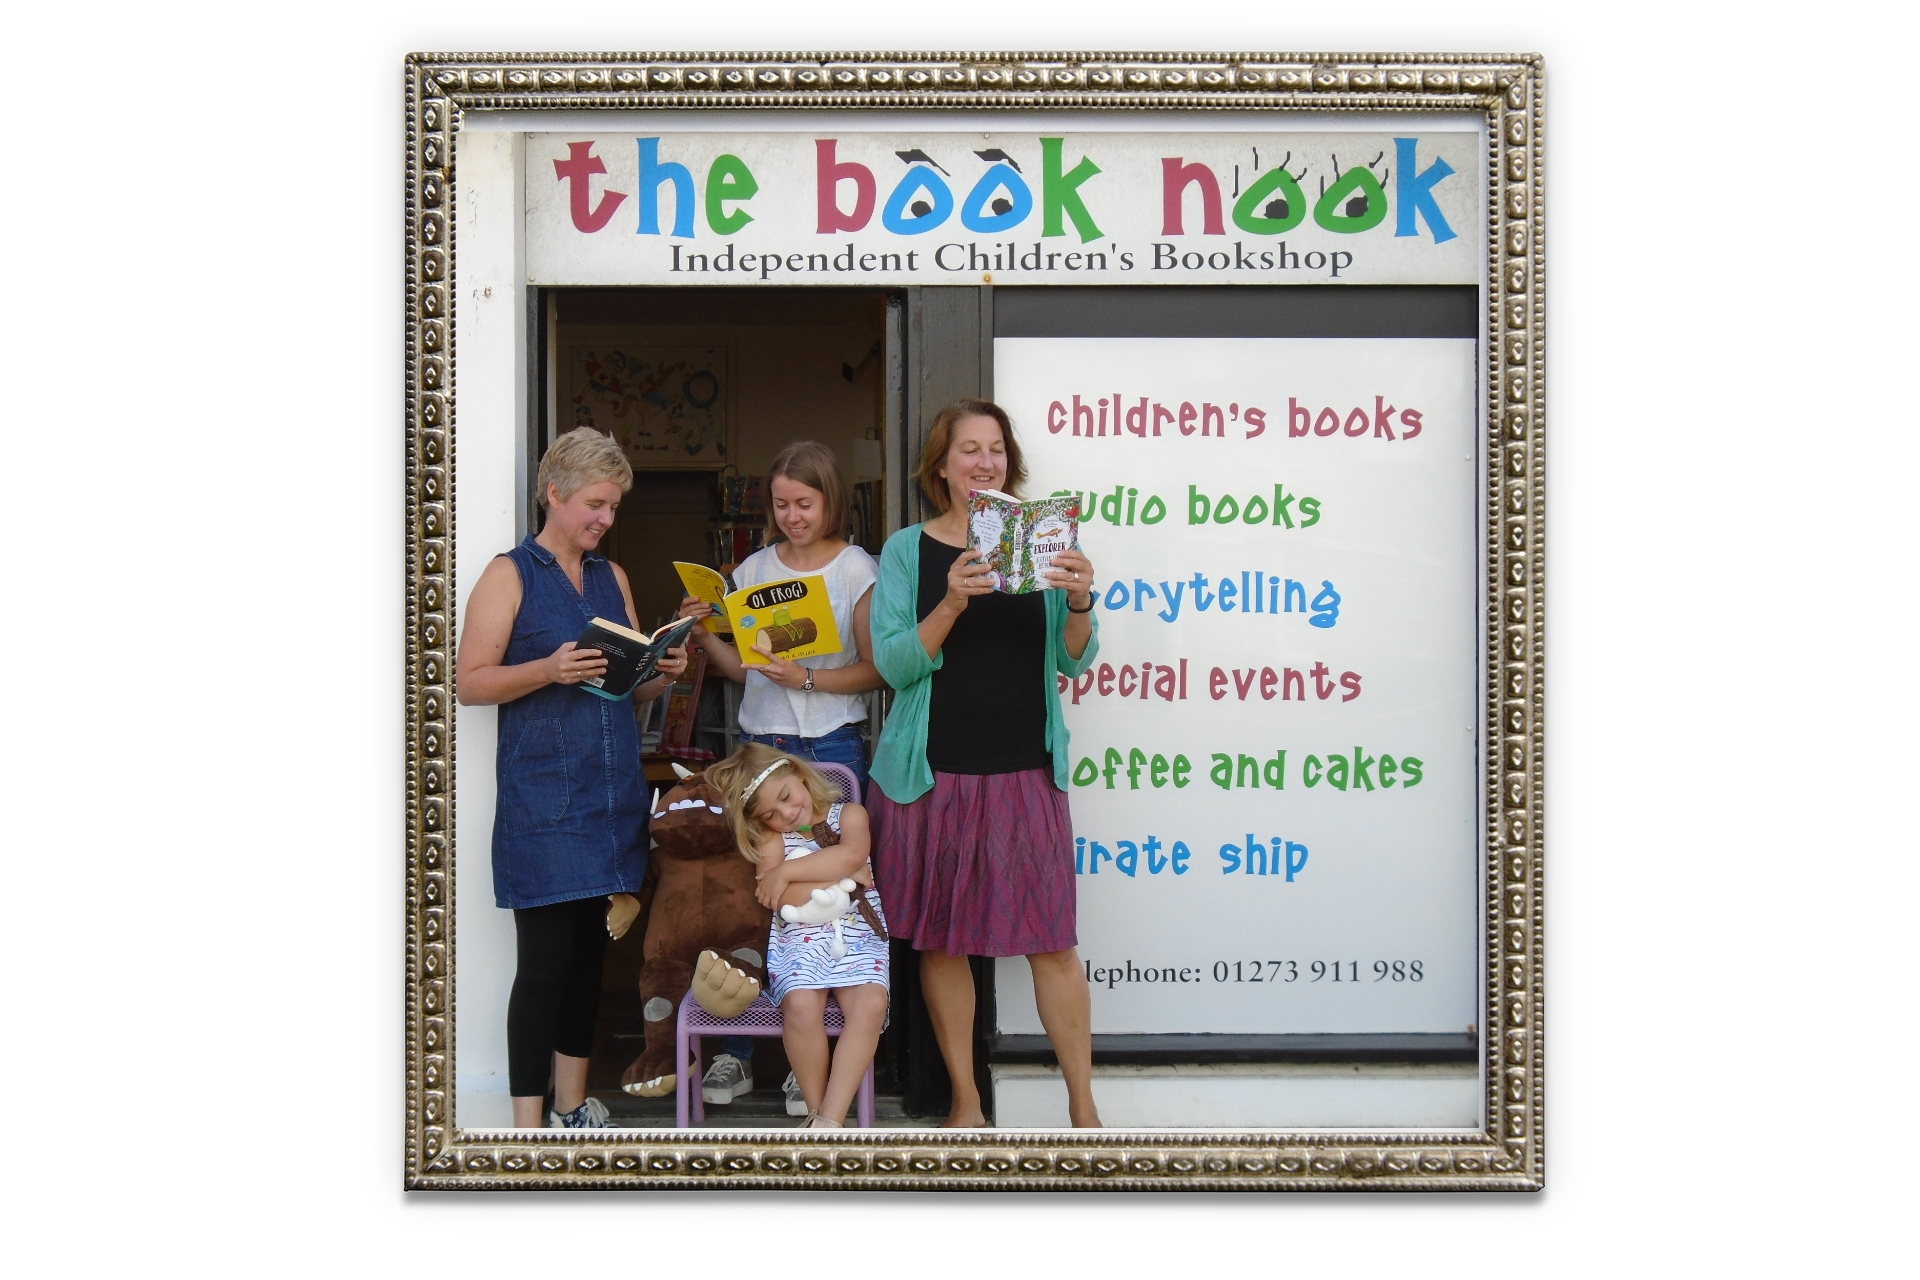 LoveReading Bookshop of the Month: The Book Nook